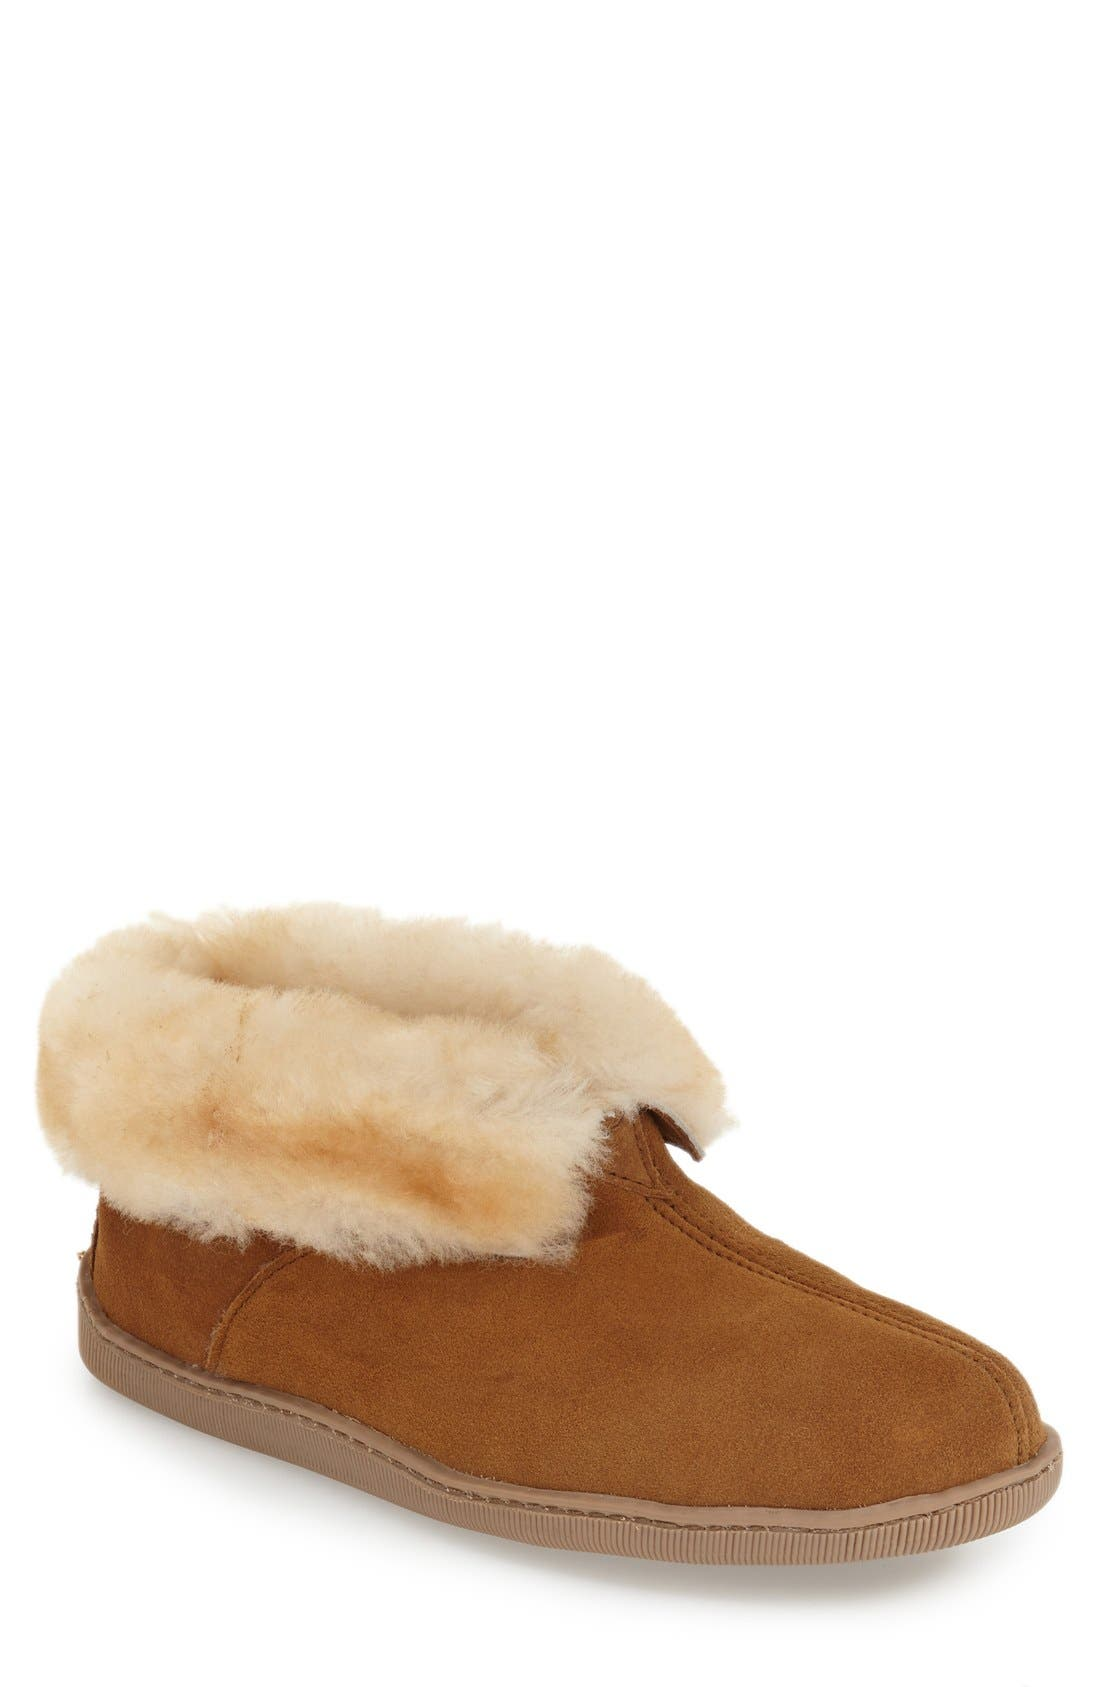 MINNETONKA,                             Genuine Shearling Lined Ankle Boot,                             Main thumbnail 1, color,                             GOLDEN TAN